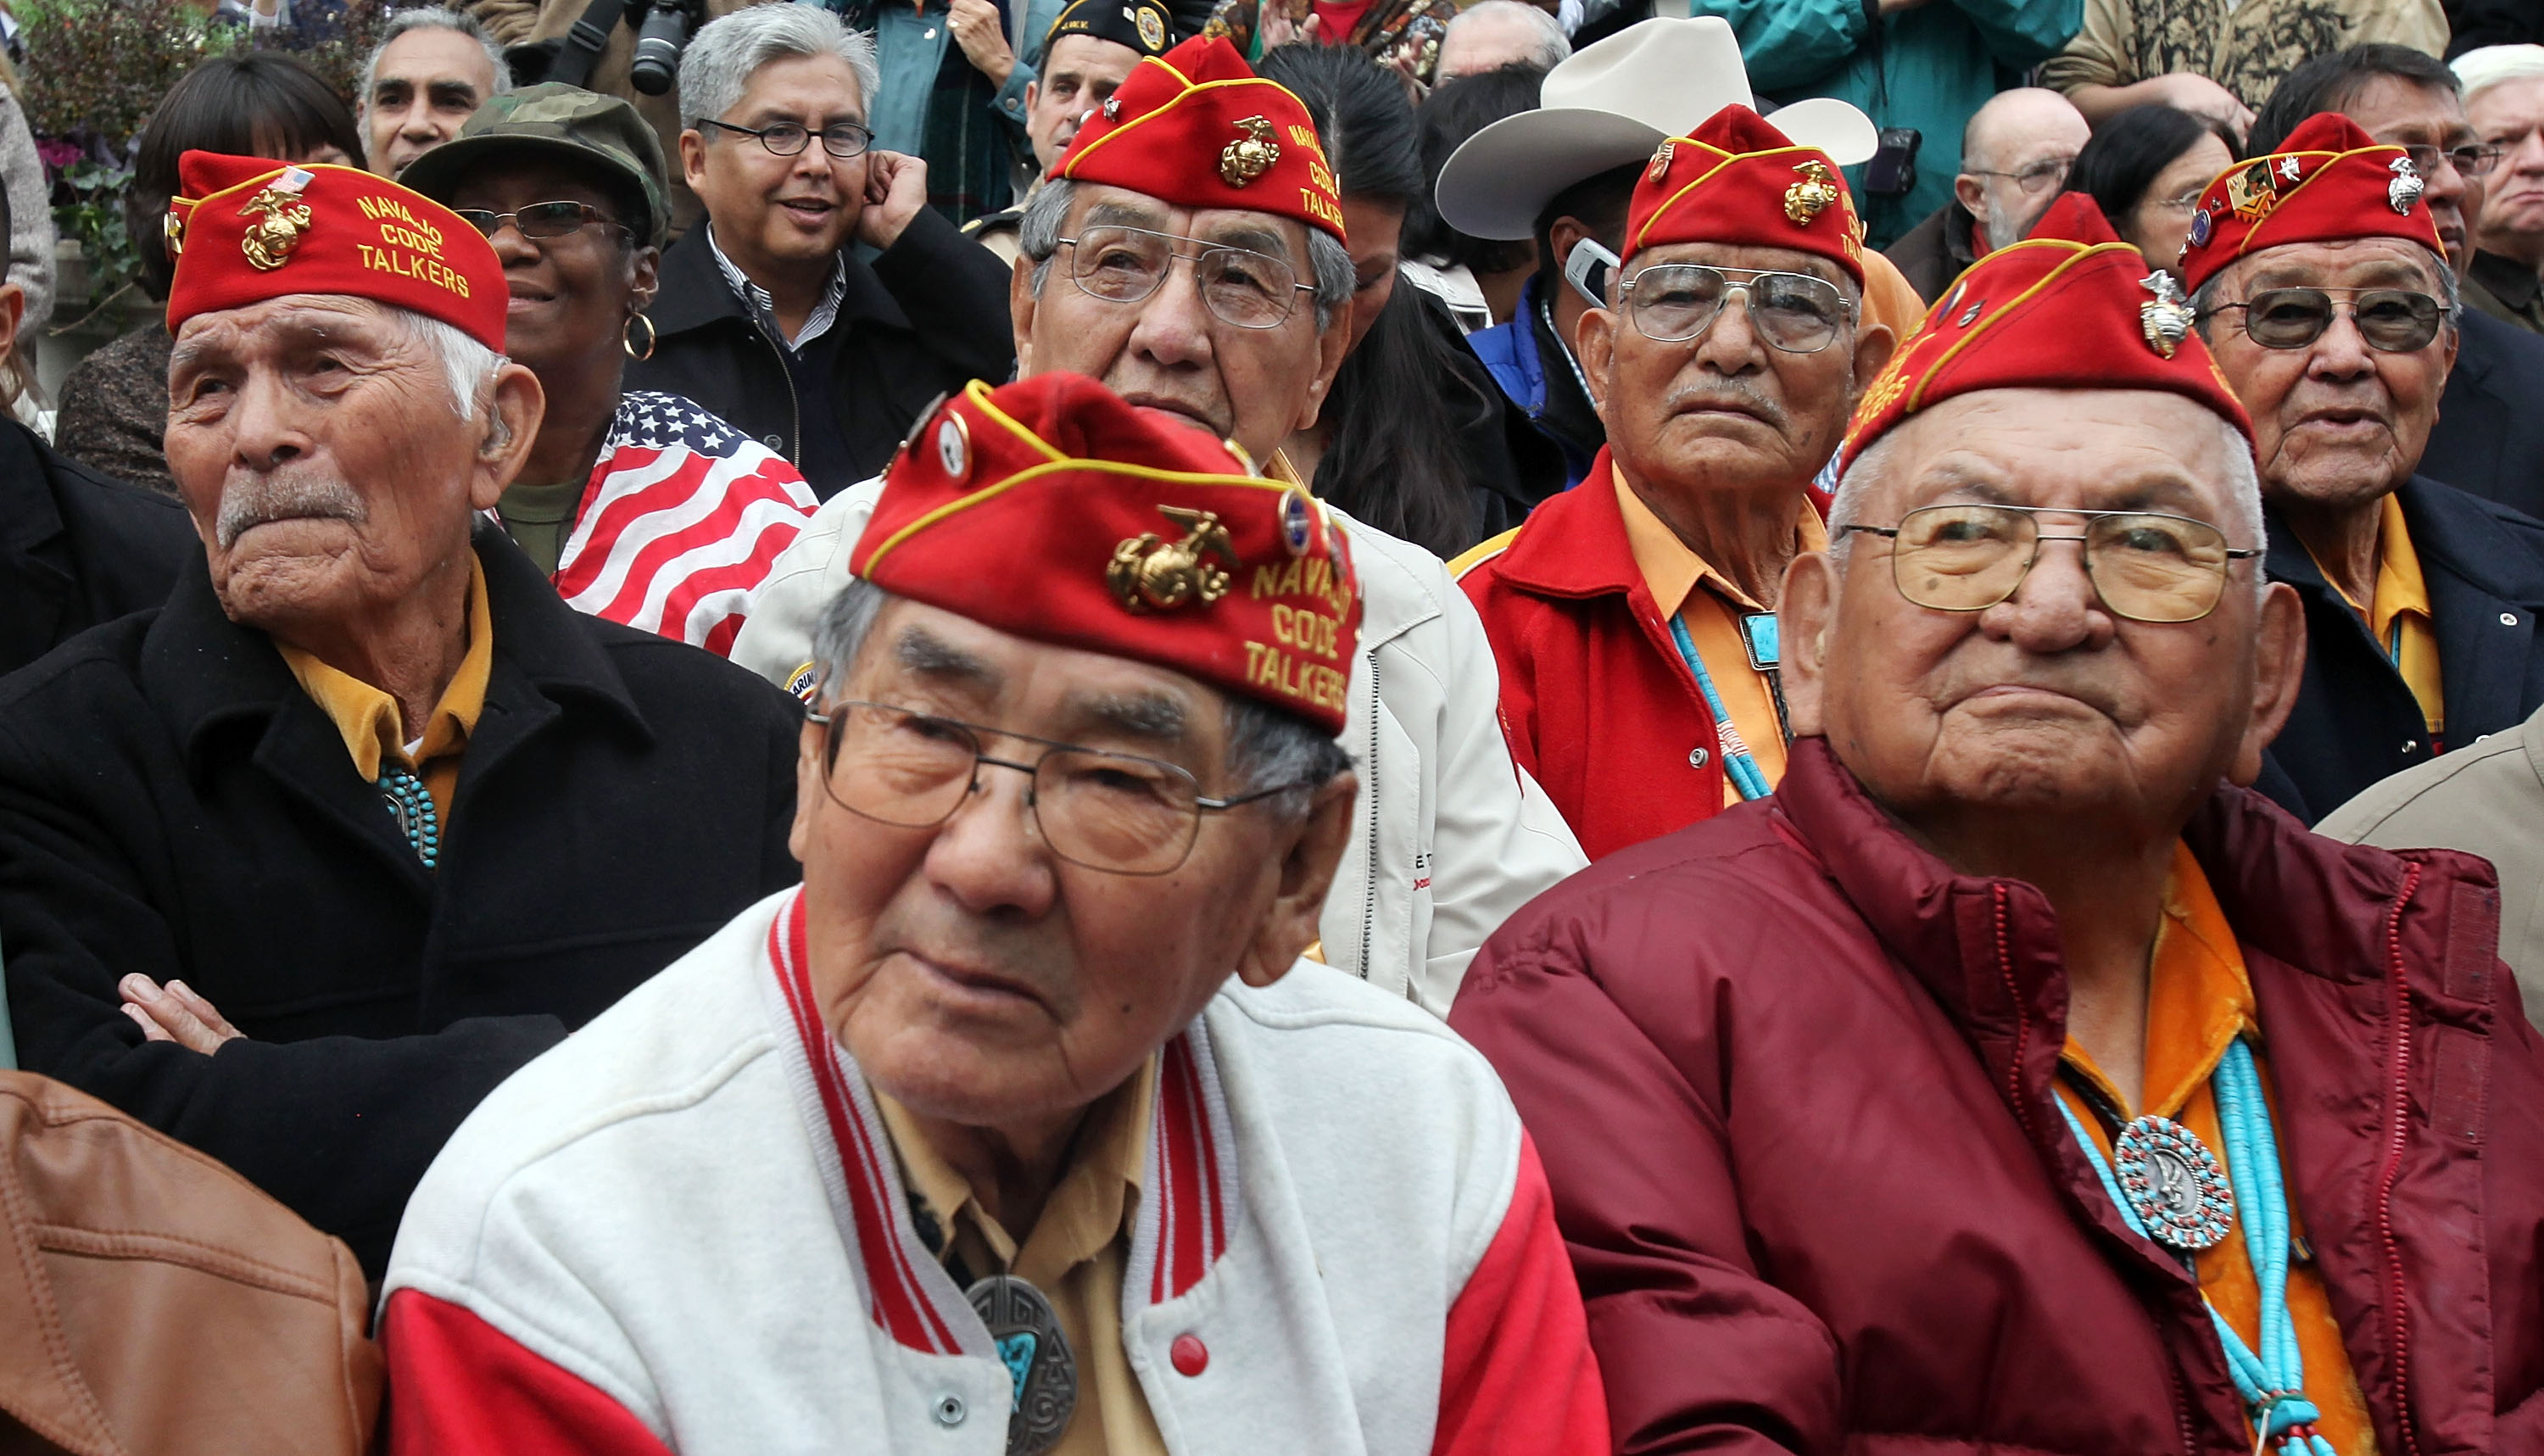 Members of the elite Navajo Code Talkers, the U.S. Marine unit that delivered unbreakable codes during World War II battles against the Japanese, on Veterans Day, Nov. 11, 2009, in NYC. (Getty)